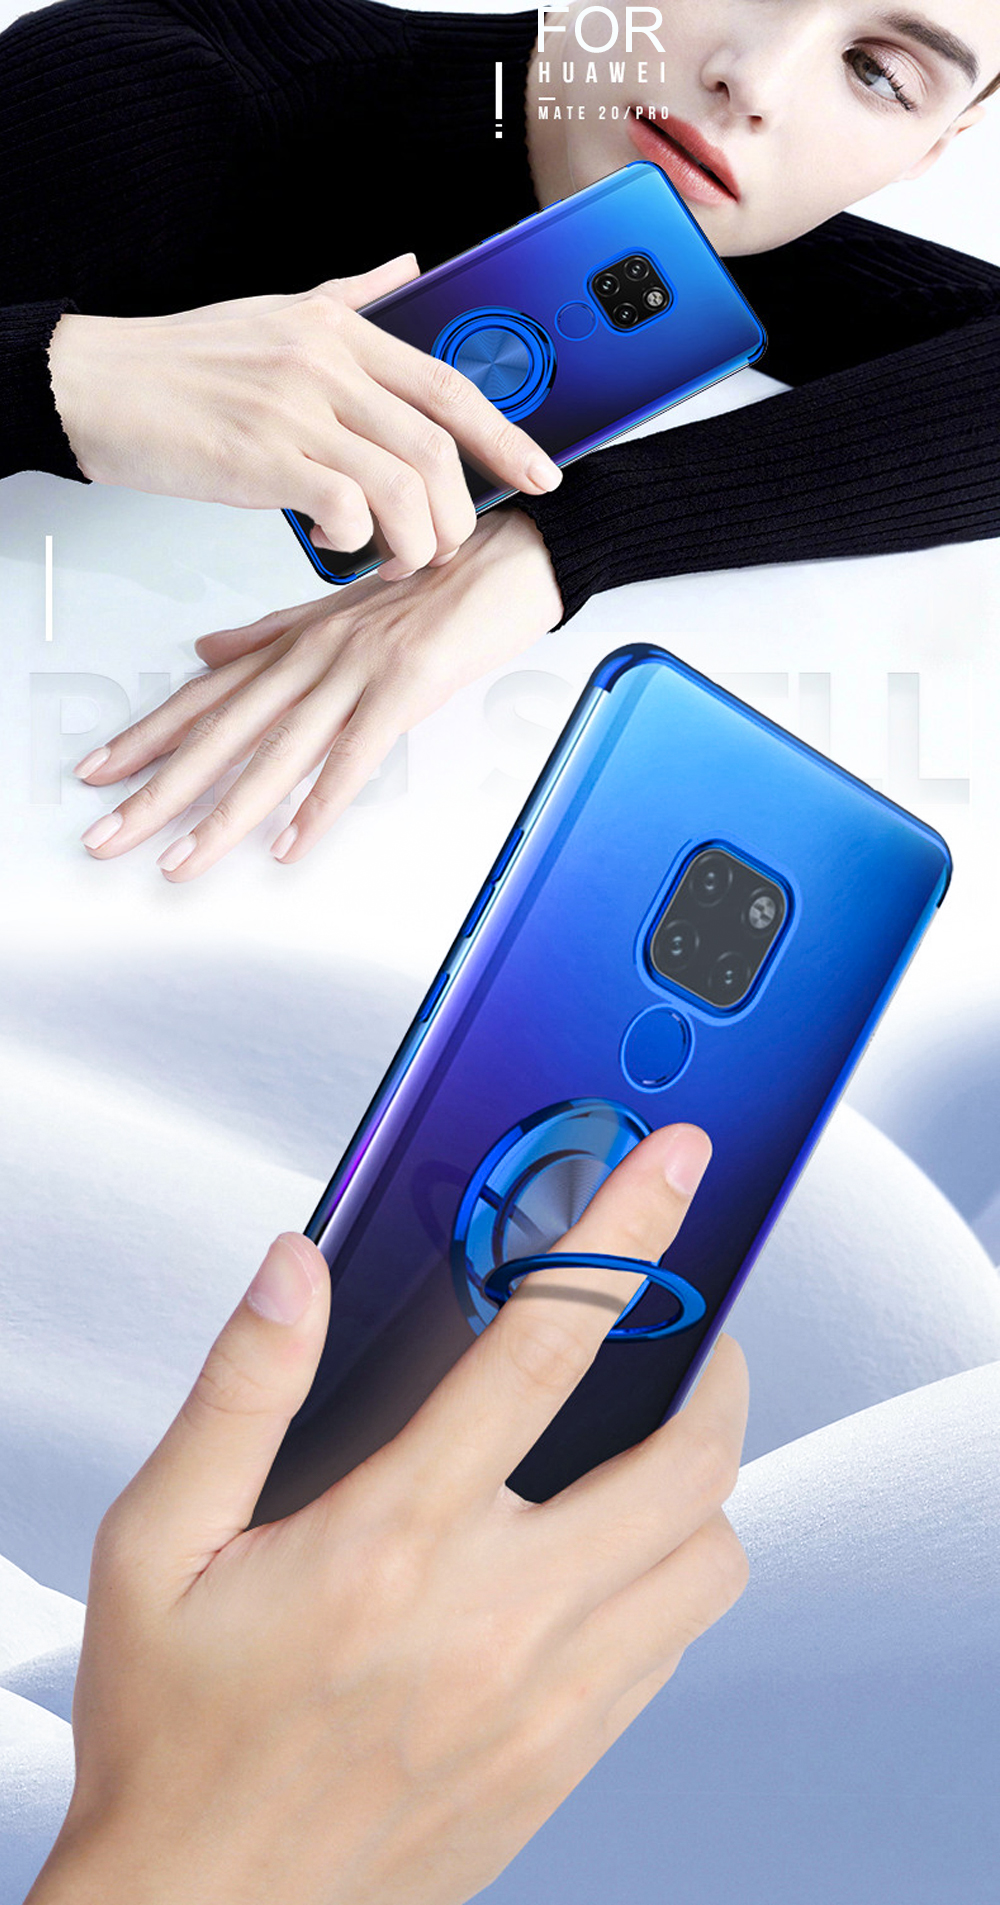 Ascromy-For-Huawei-Mate-20-pro-Soft-Silicone-Plating-Bumper-Case-Cover-Ring-Holder-Stand-For-Huawei-P20-Lite-Mate20-Mate-20-Pro (1)